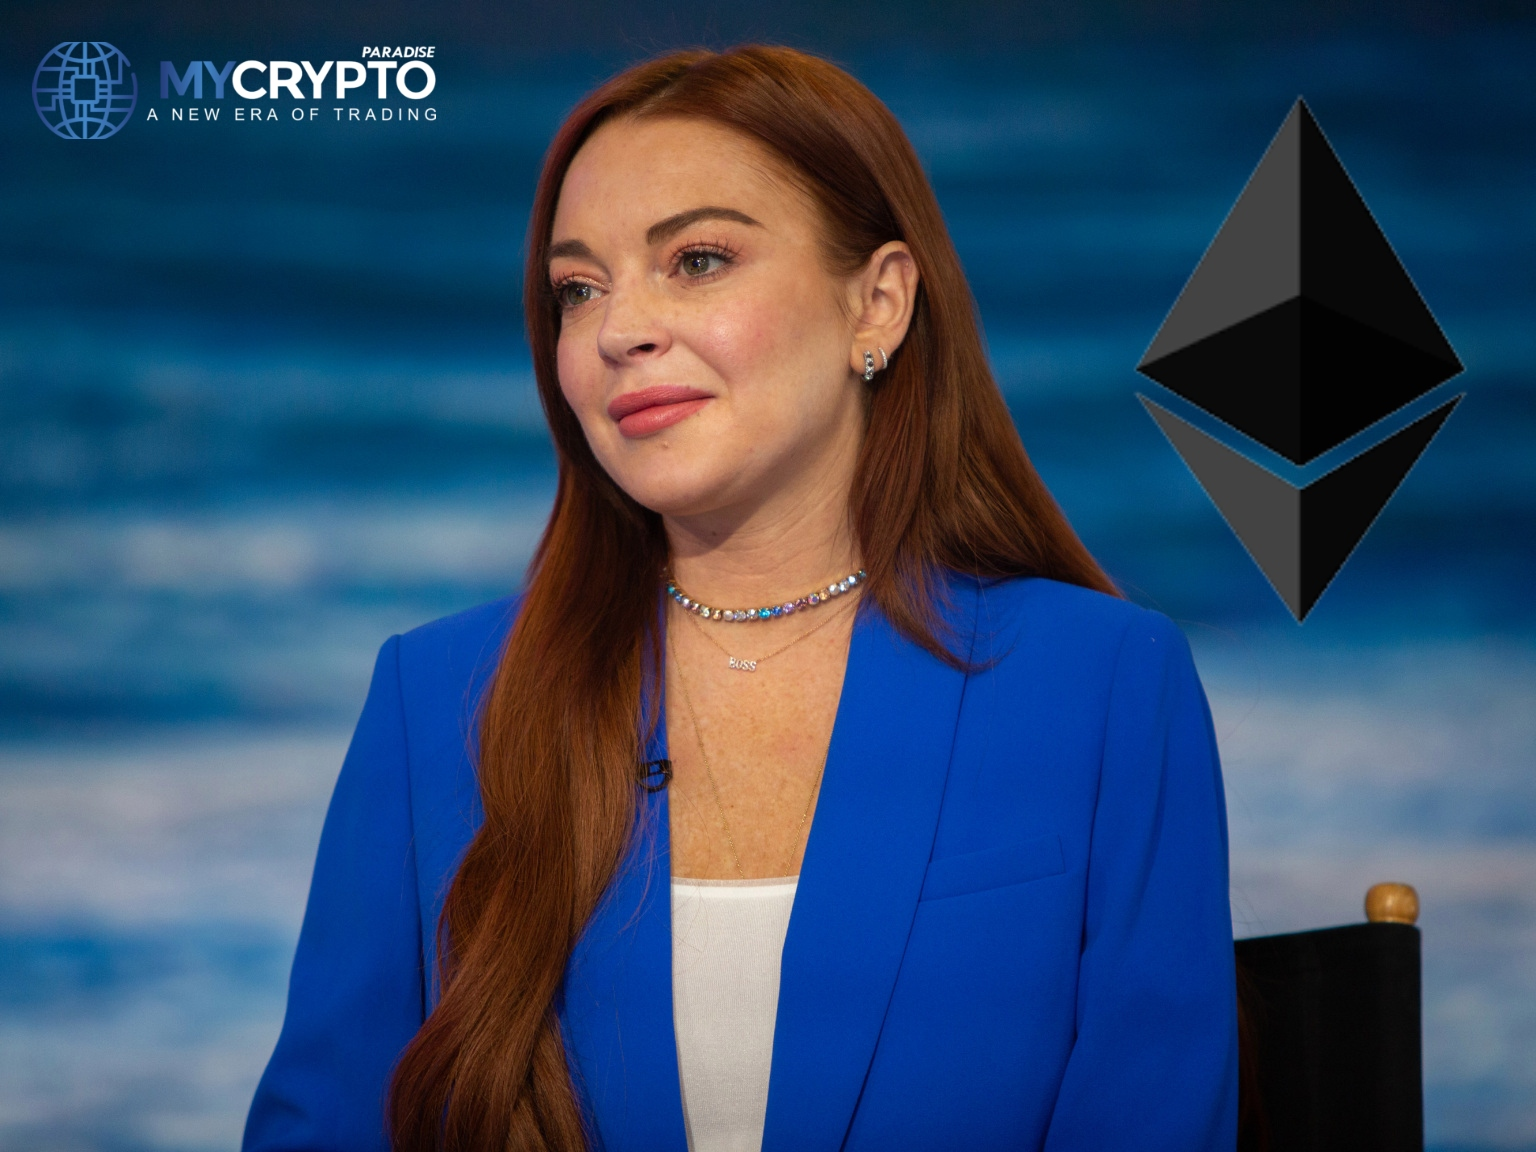 Lindsay Lohan to Give Away $10,000 Ethereum Using Her ETH 10 K'S NFTs